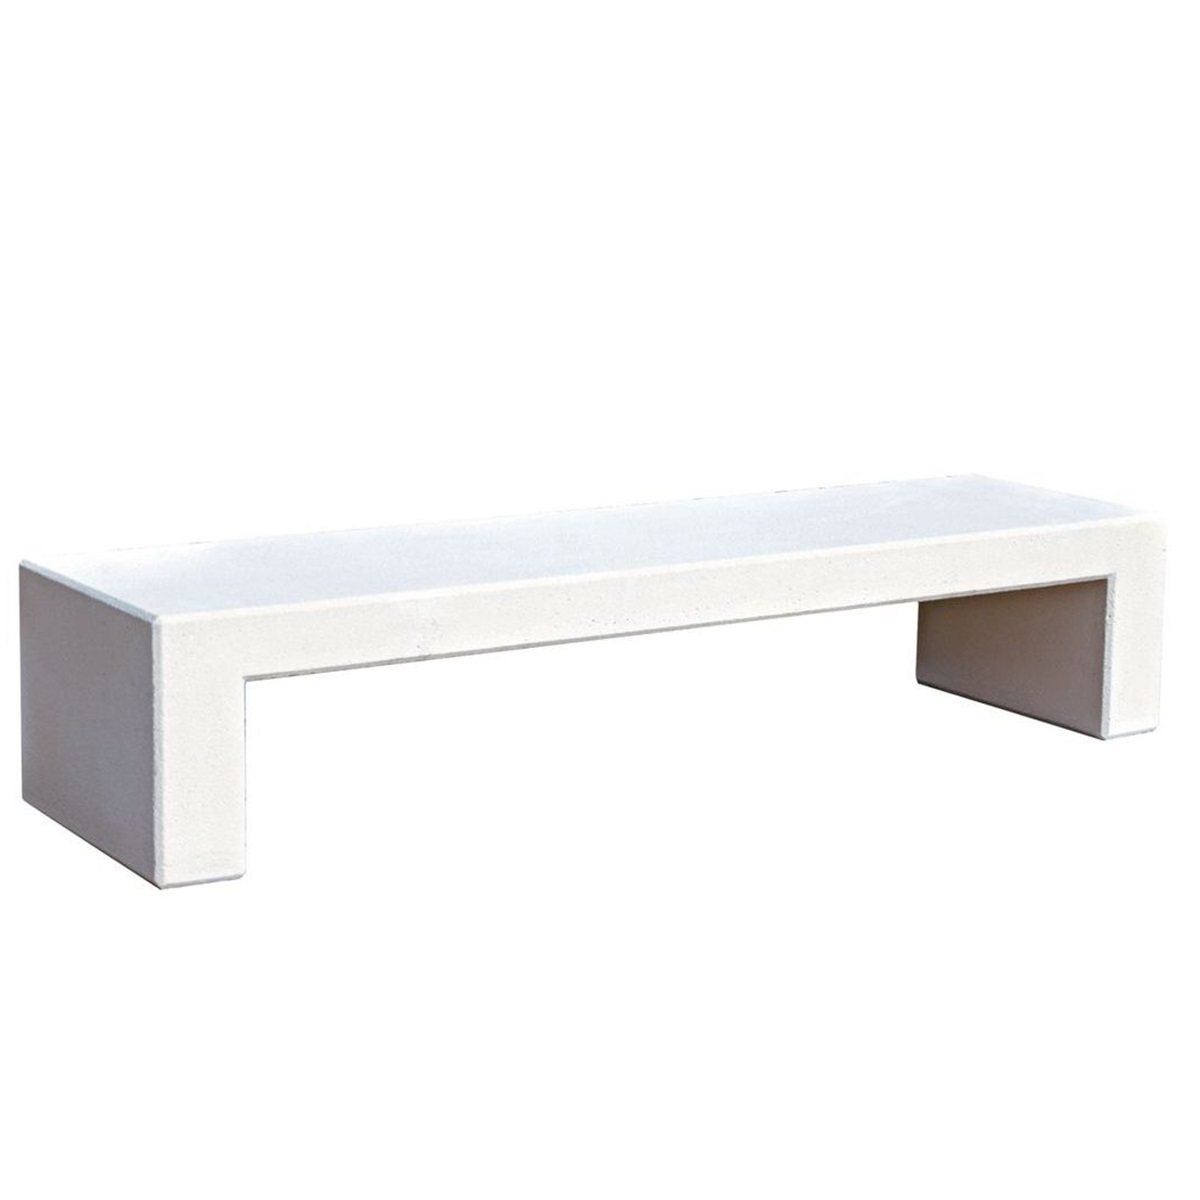 Concrete Zeus Bench urban furniture to sit down in parks and gardens